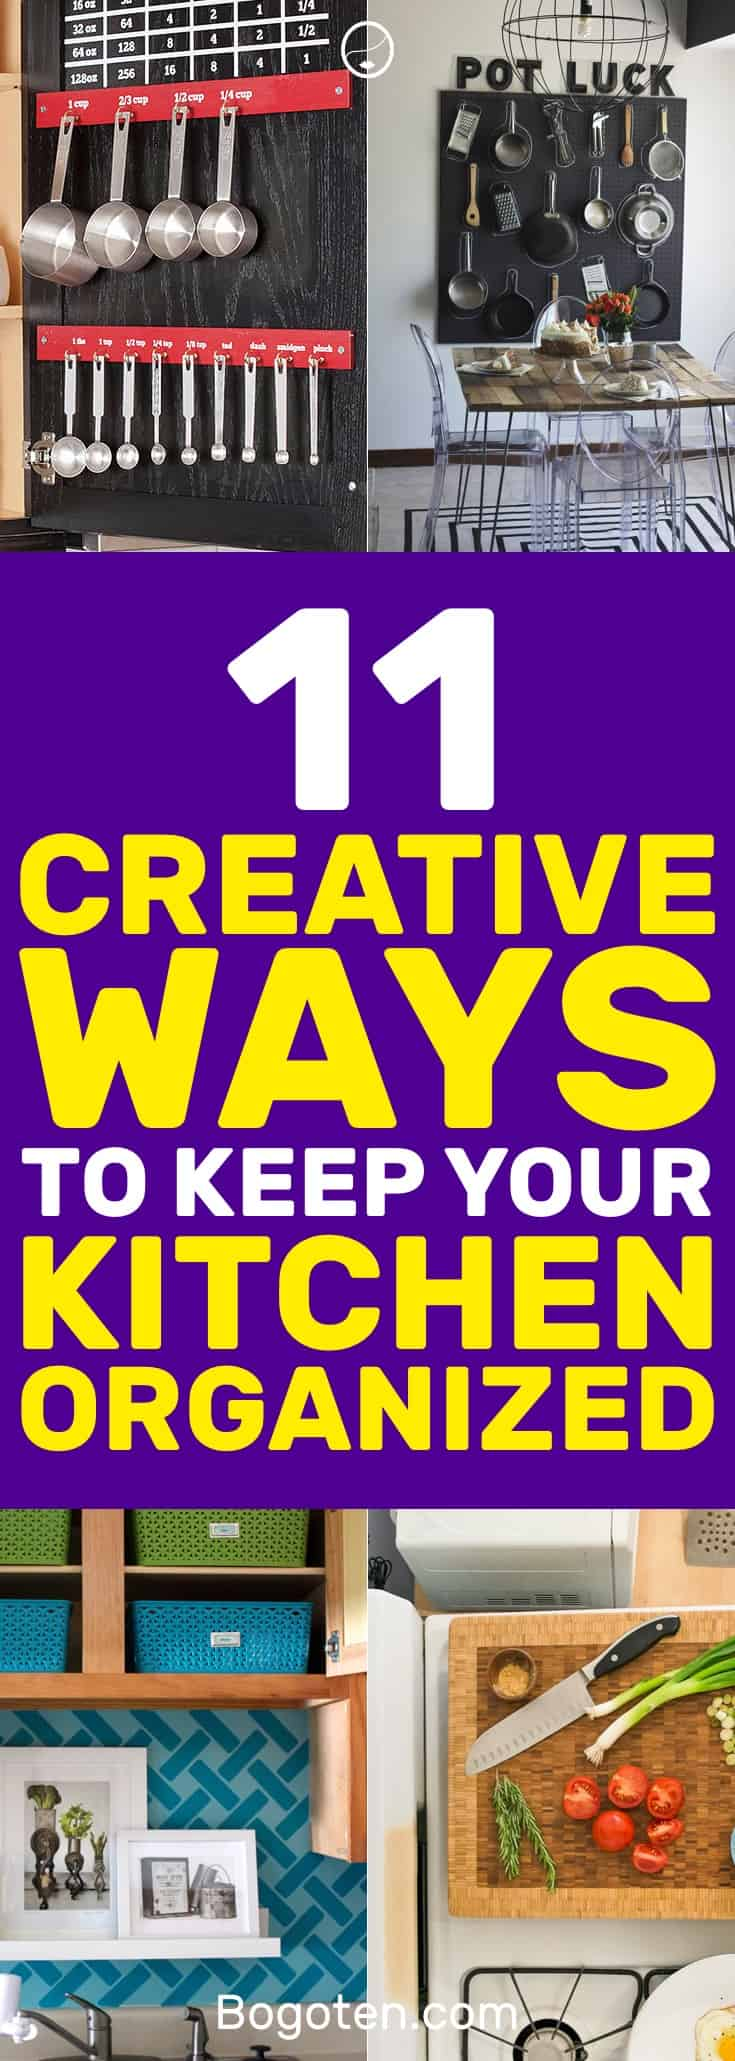 I love these DIY hacks to keep my kitchen organized. Definitely pinning for later. #DIY #Organization